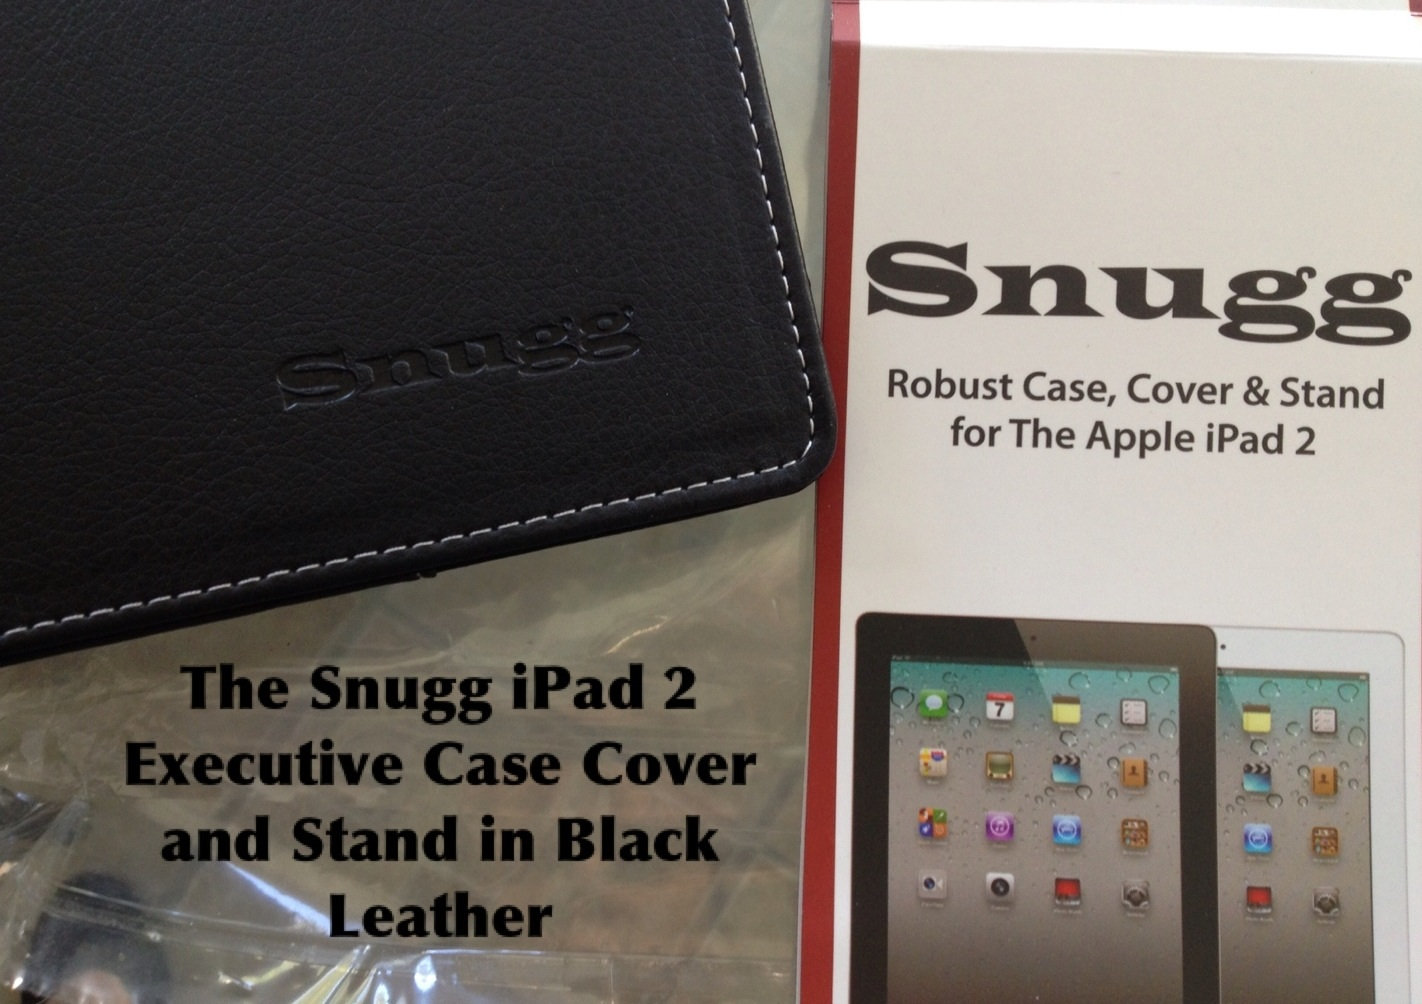 The Snugg iPad 2 Executive Case Cover and Stand